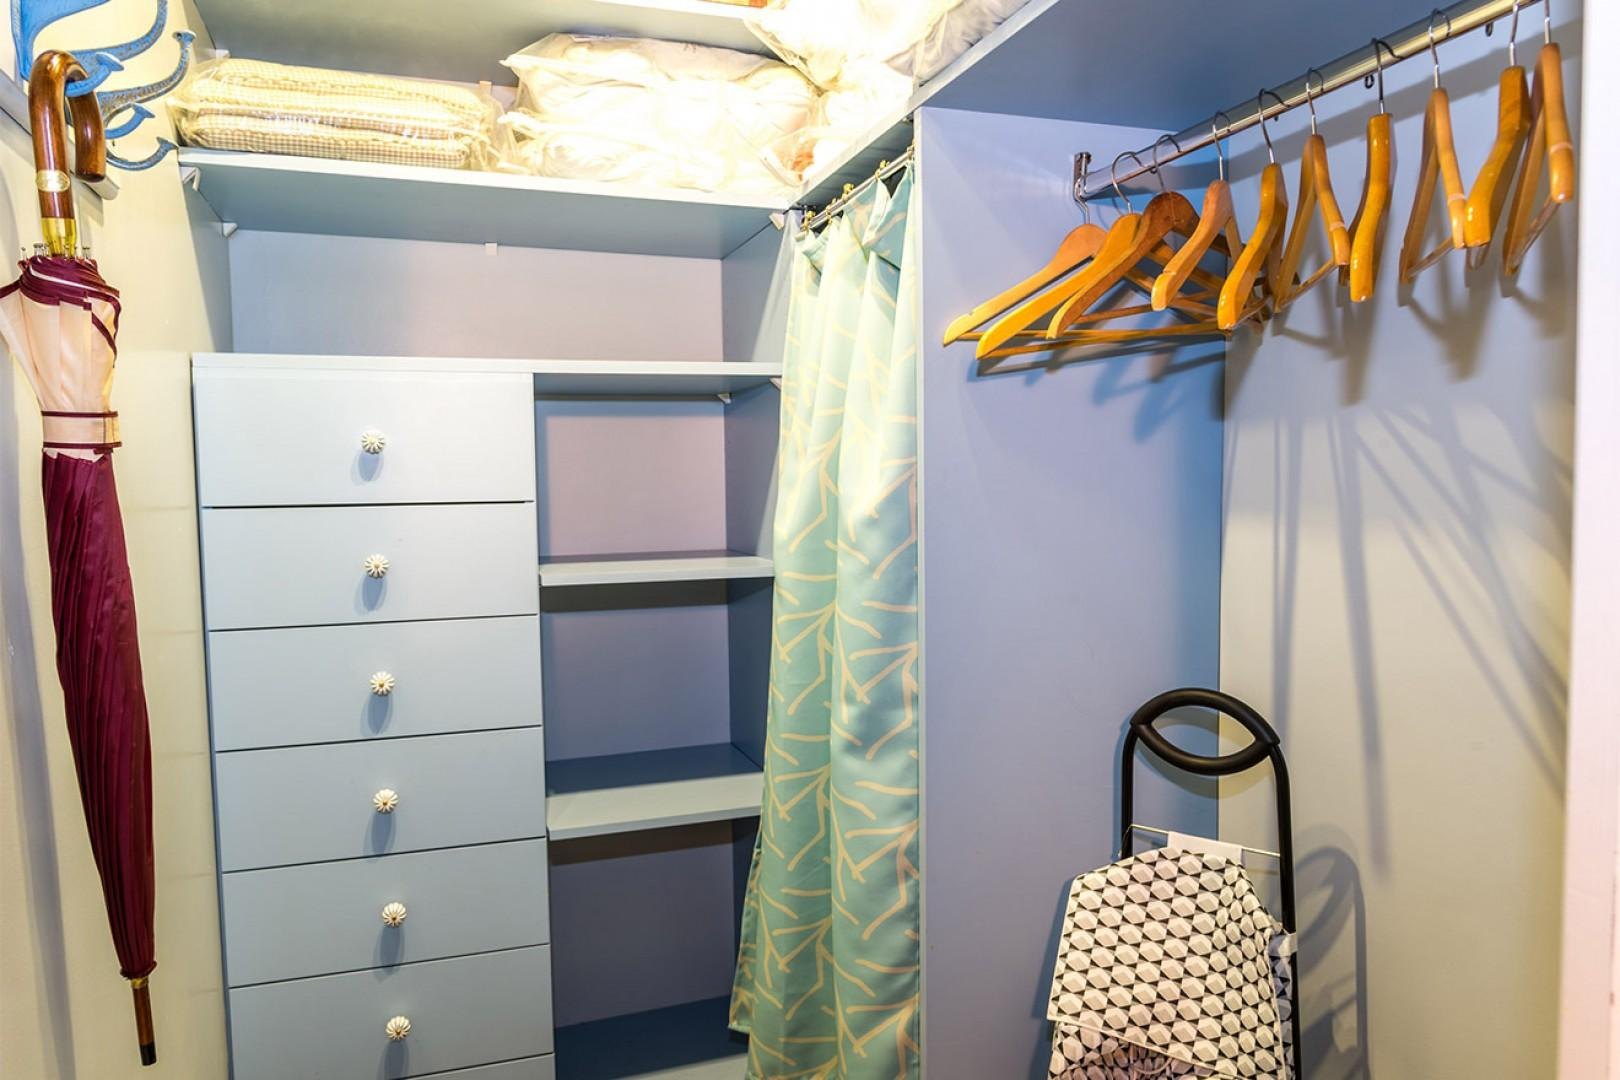 There is a large walk-in closet located off of the hallway.